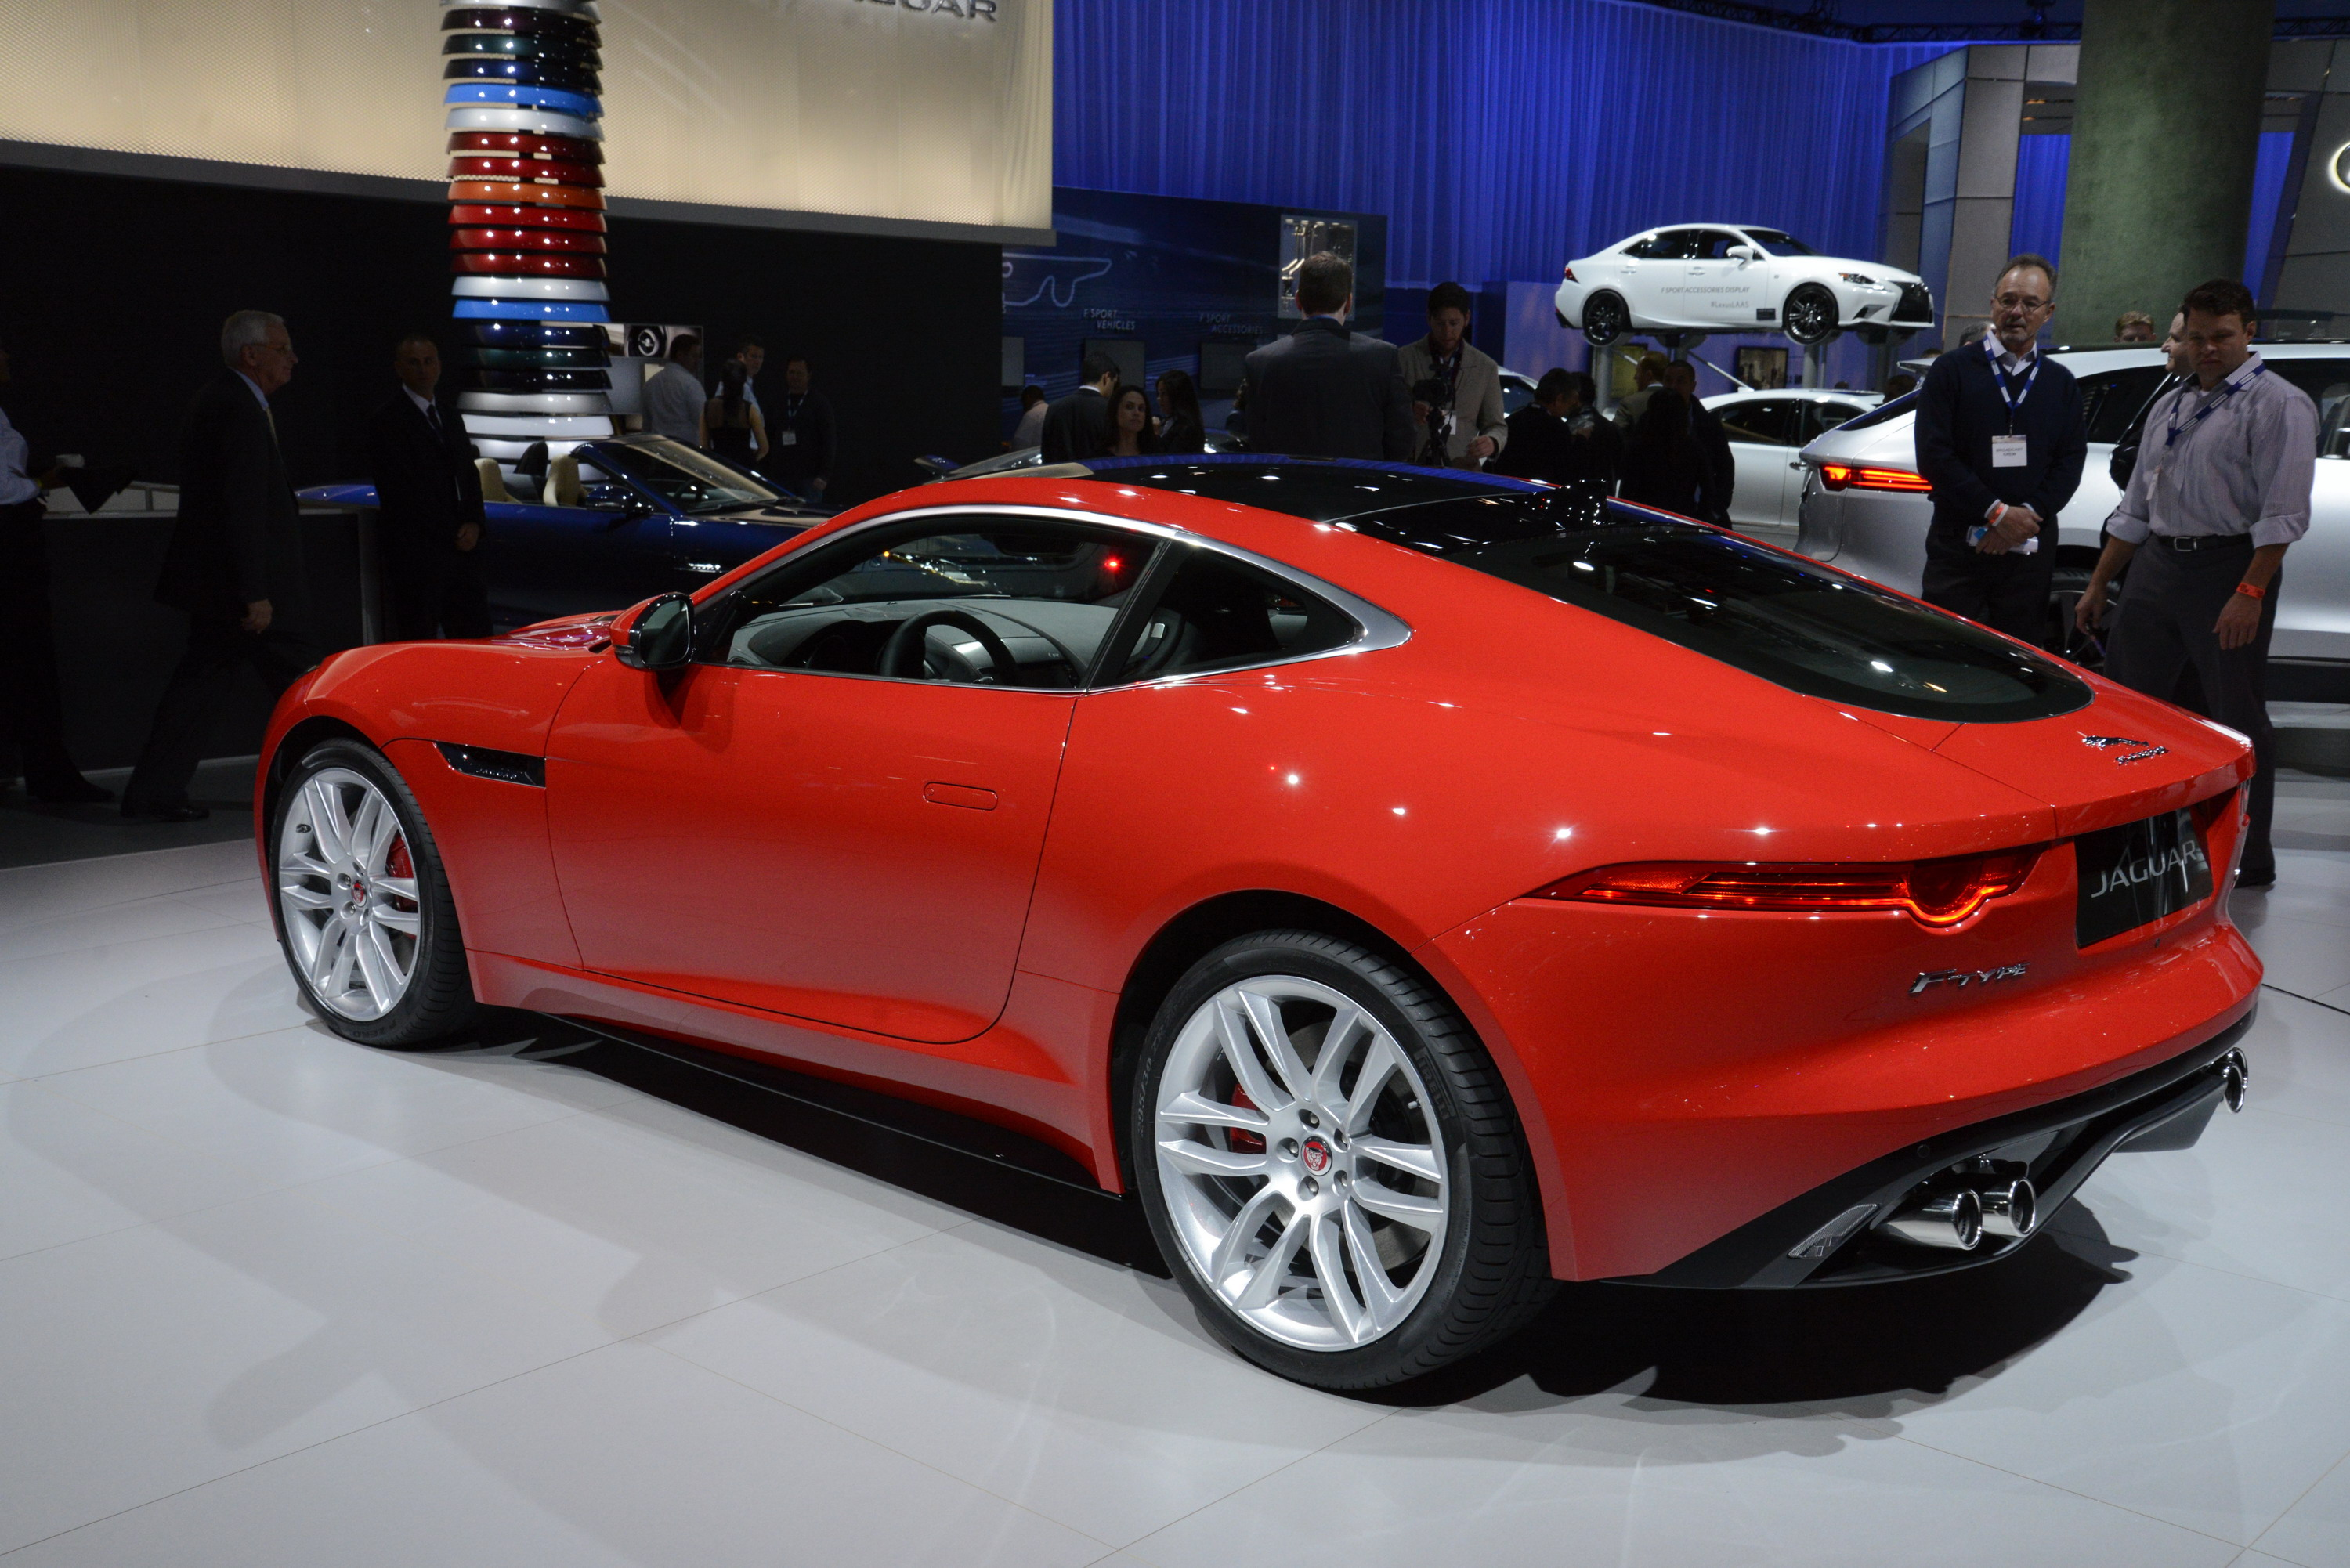 2014 Jaguar F Type Coupe Review   Top Speed. »